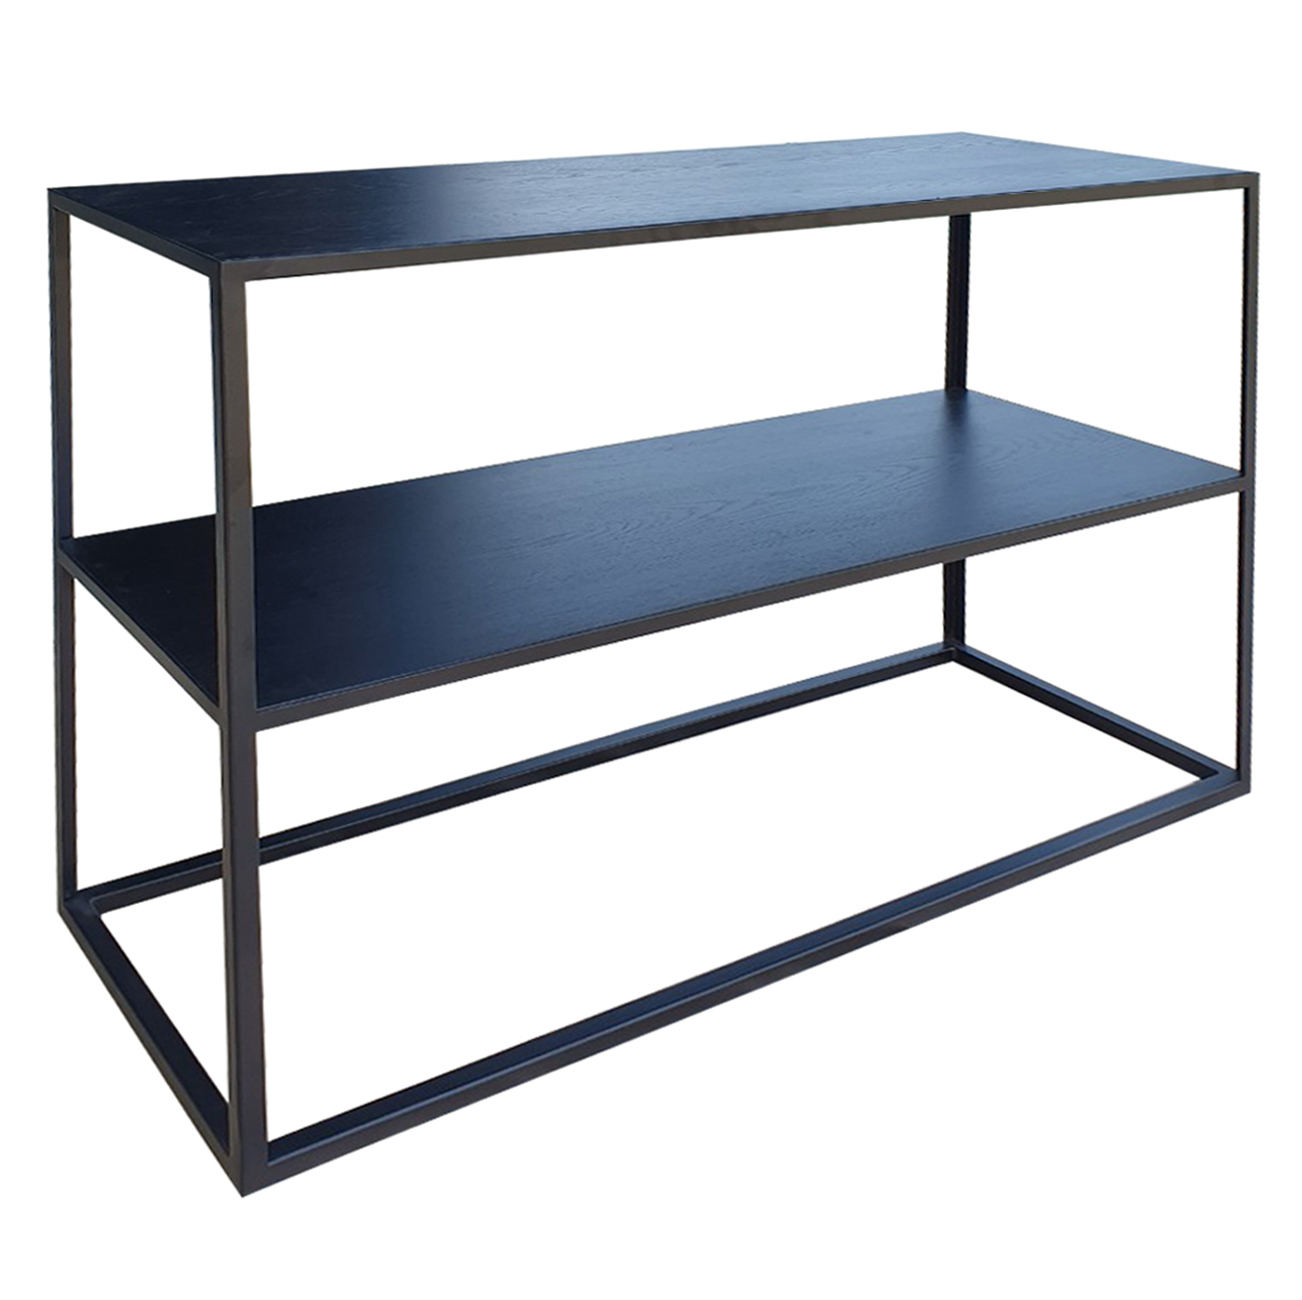 Benio Console Table